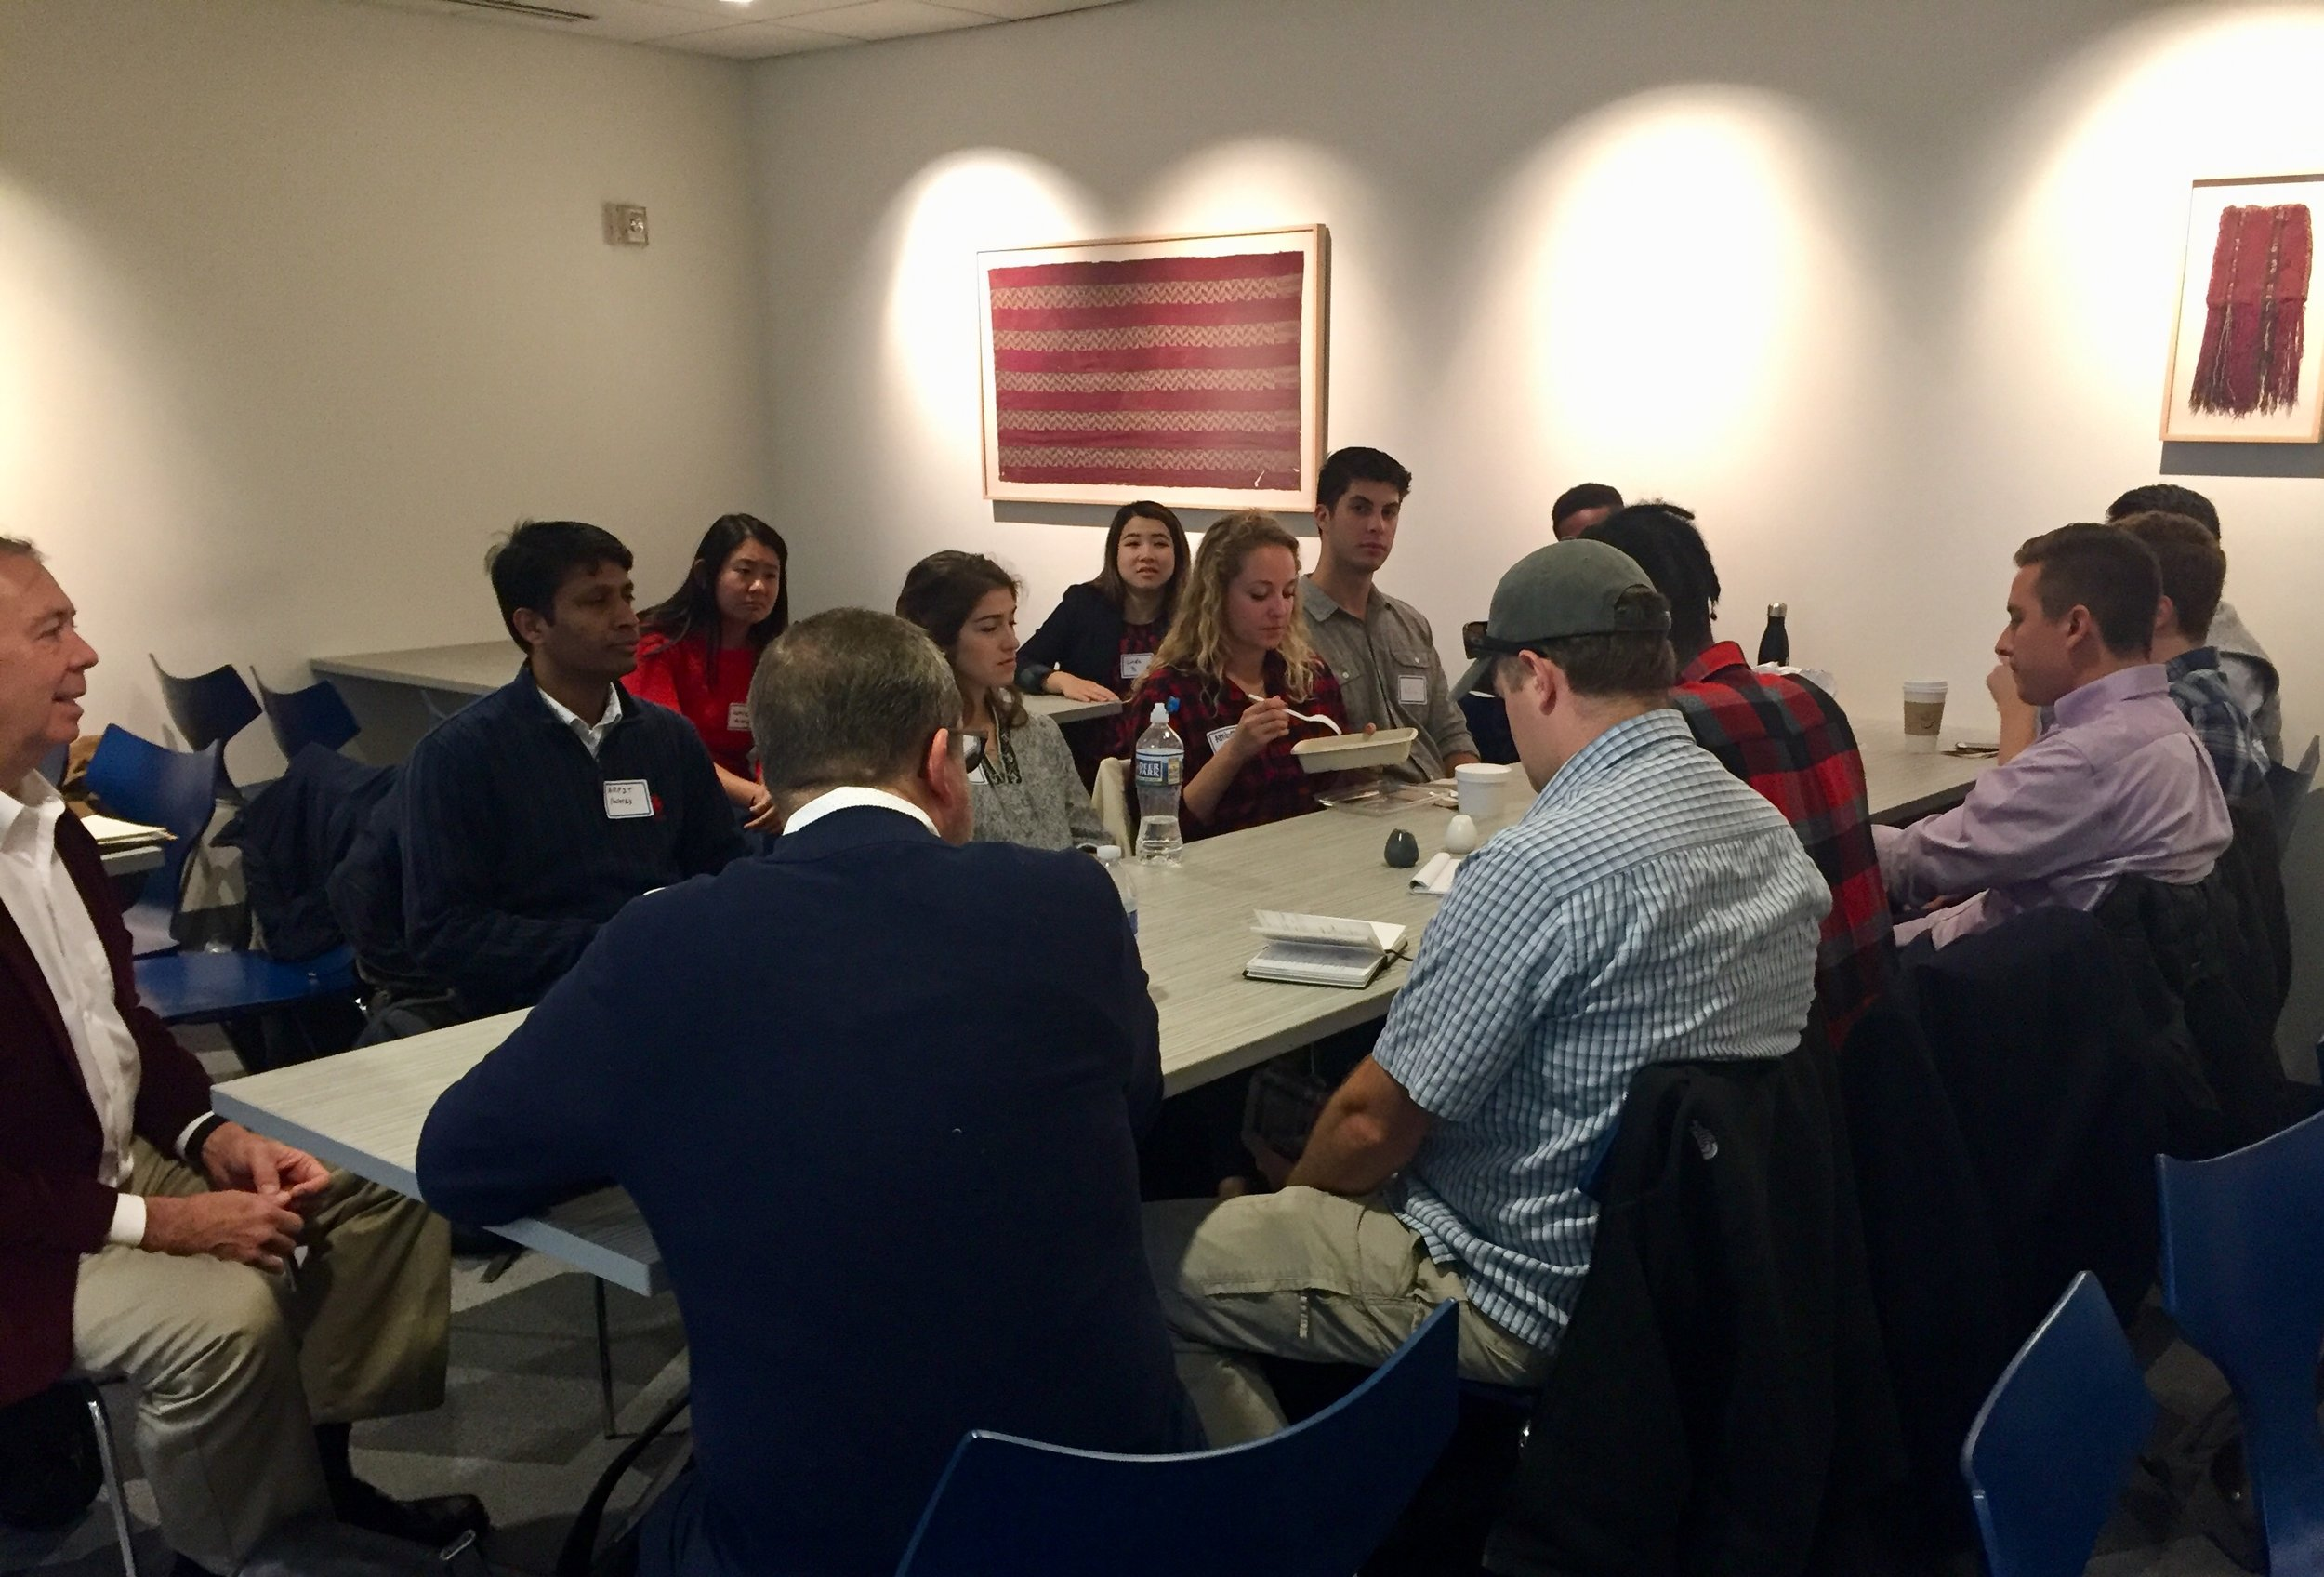 Entrepreneurs at the philly bootstrappers breakfast on october 23, 2018